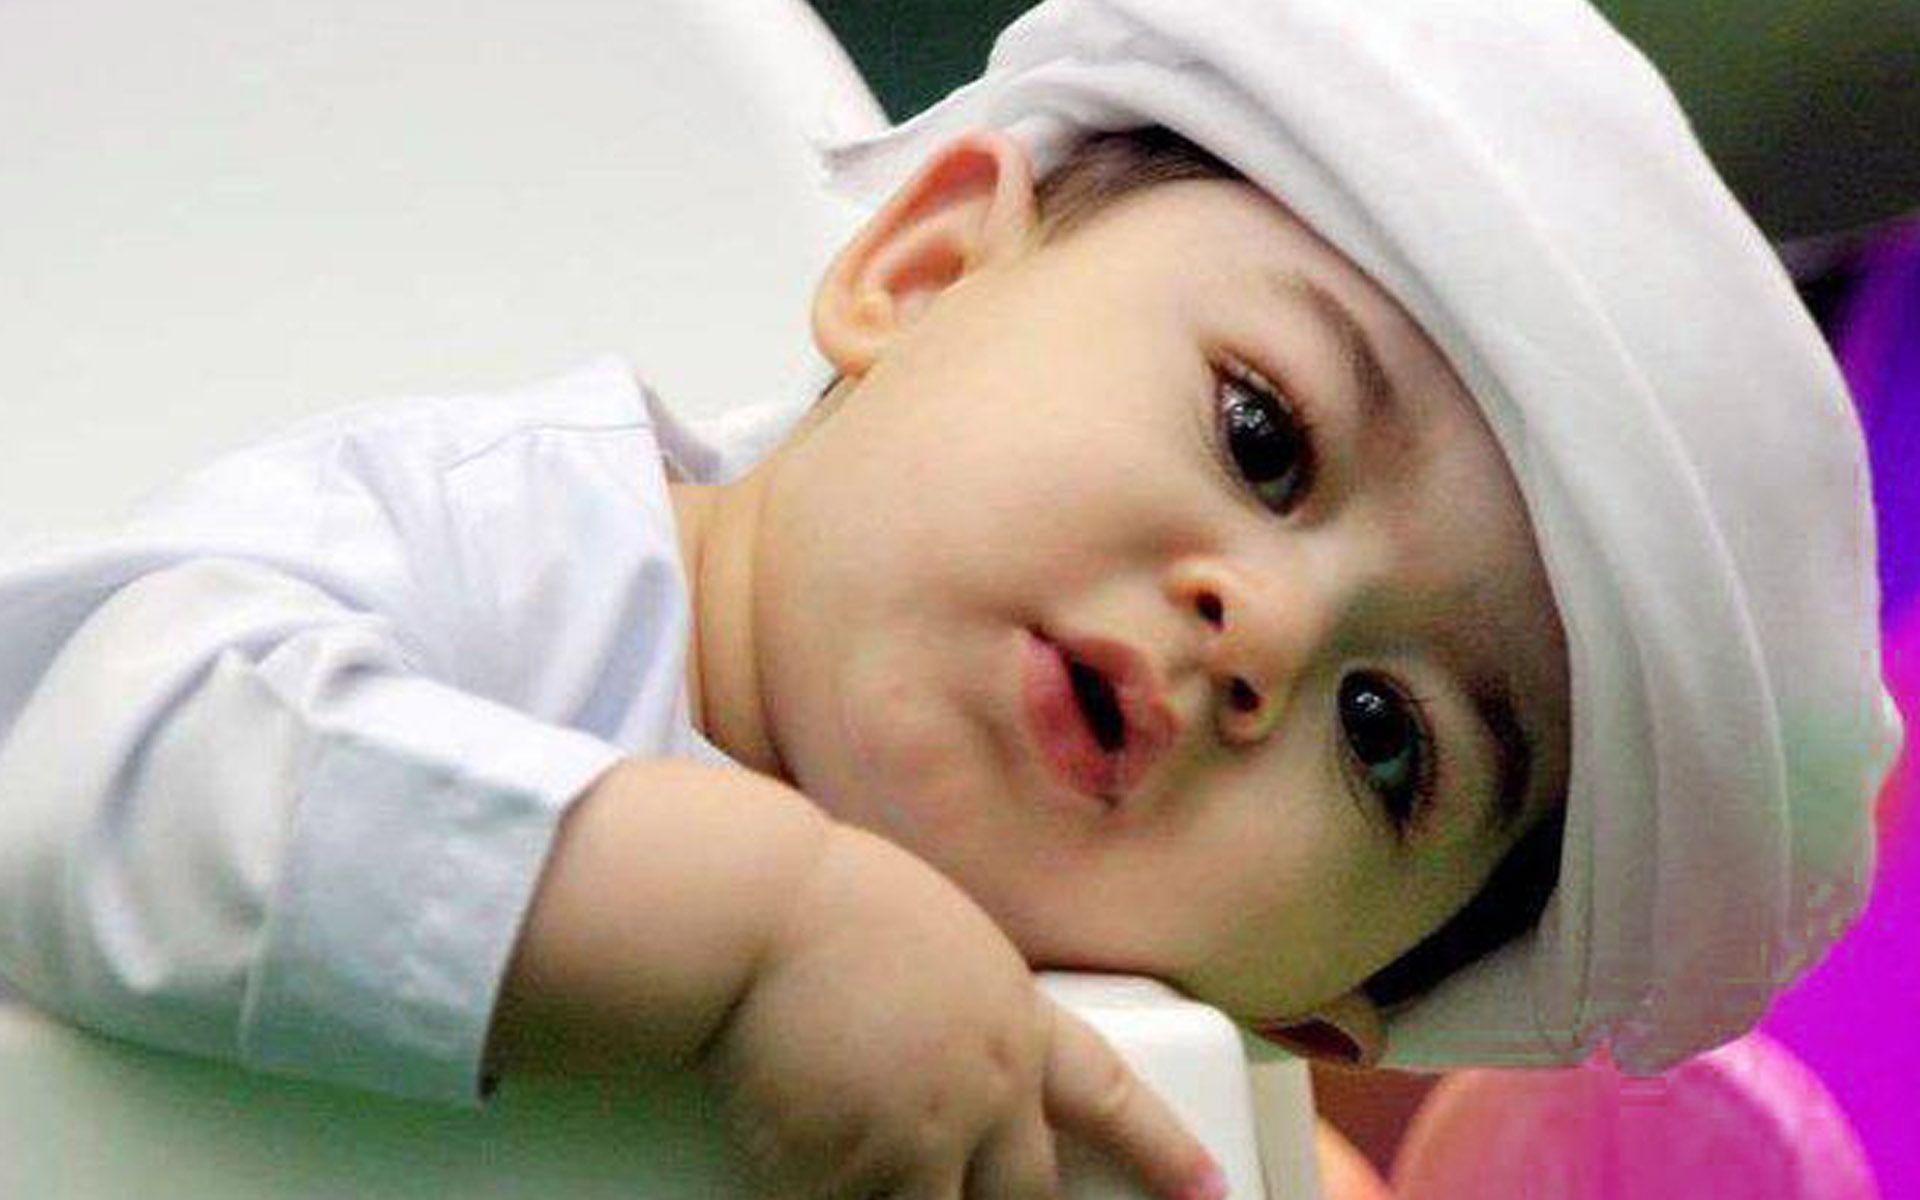 Cute baby pics hd wallpapers